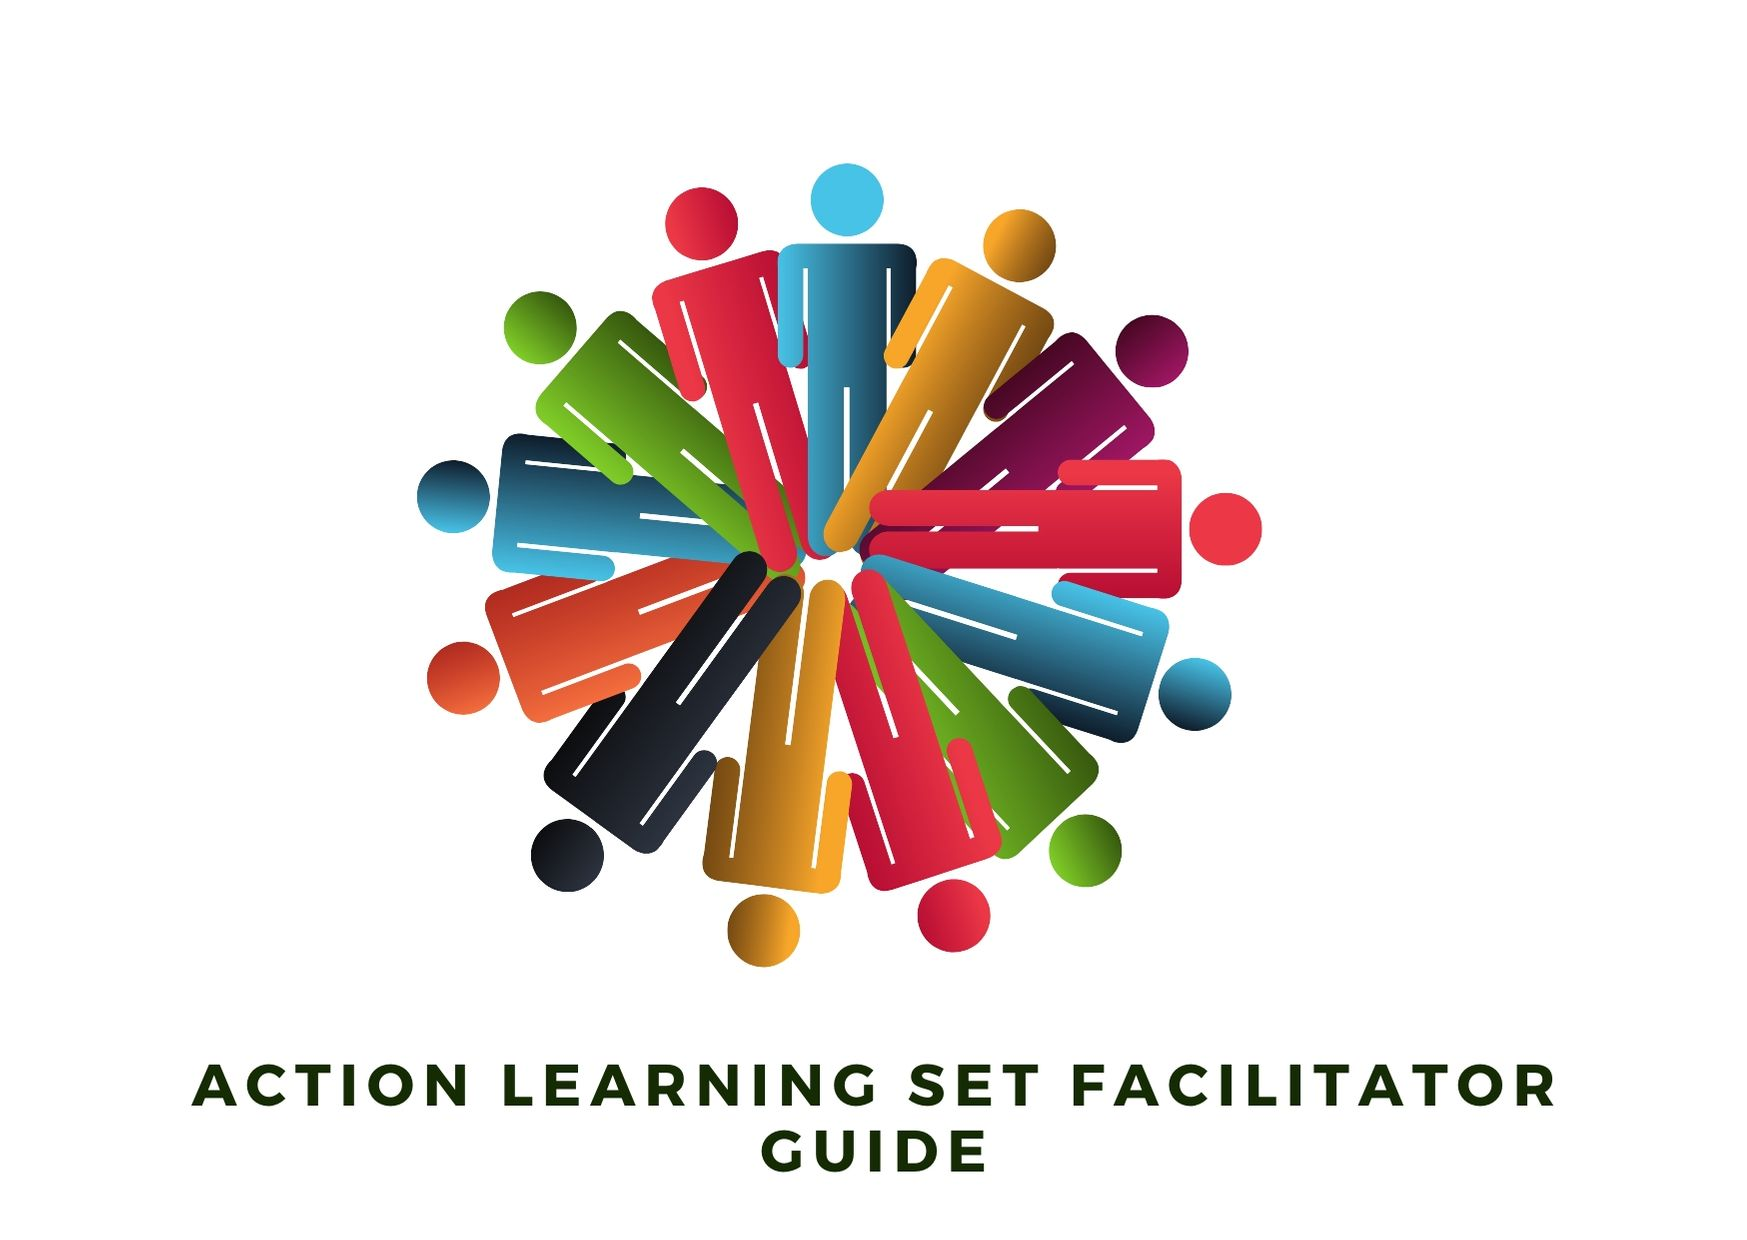 Action Learning Set Facilitator Guide